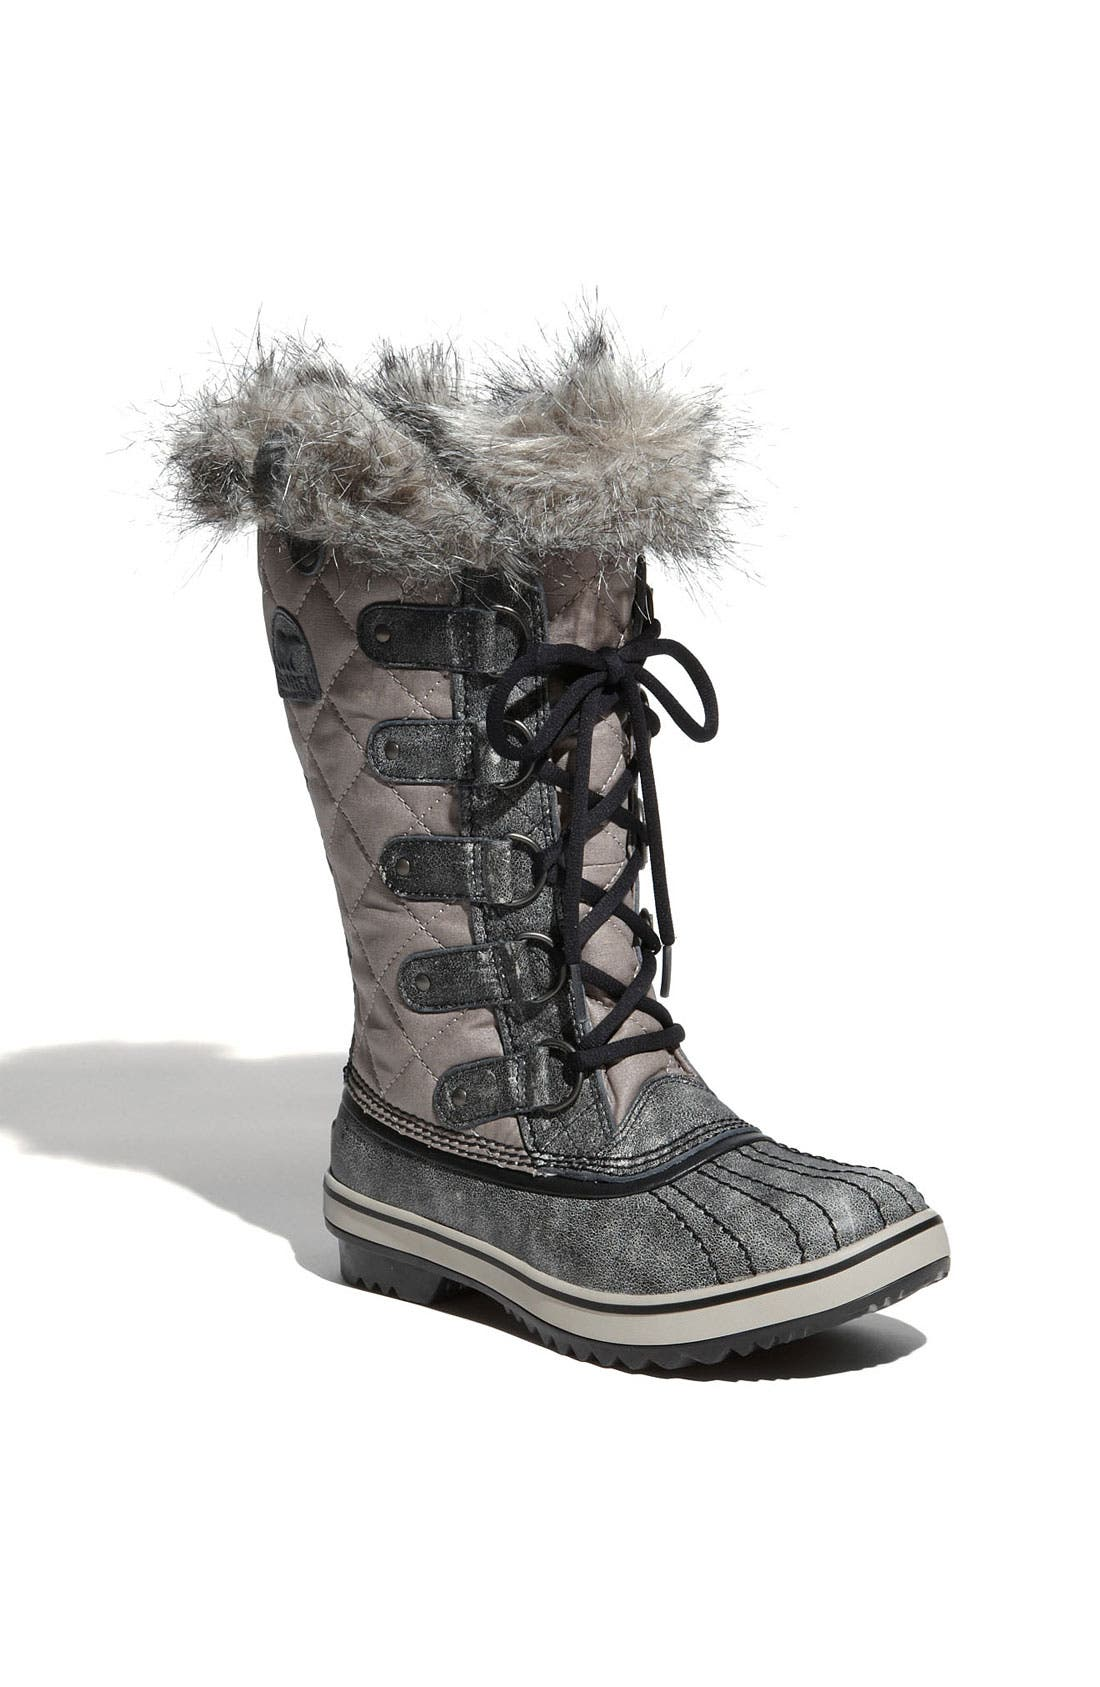 'Tofino' Boot,                             Main thumbnail 1, color,                             005